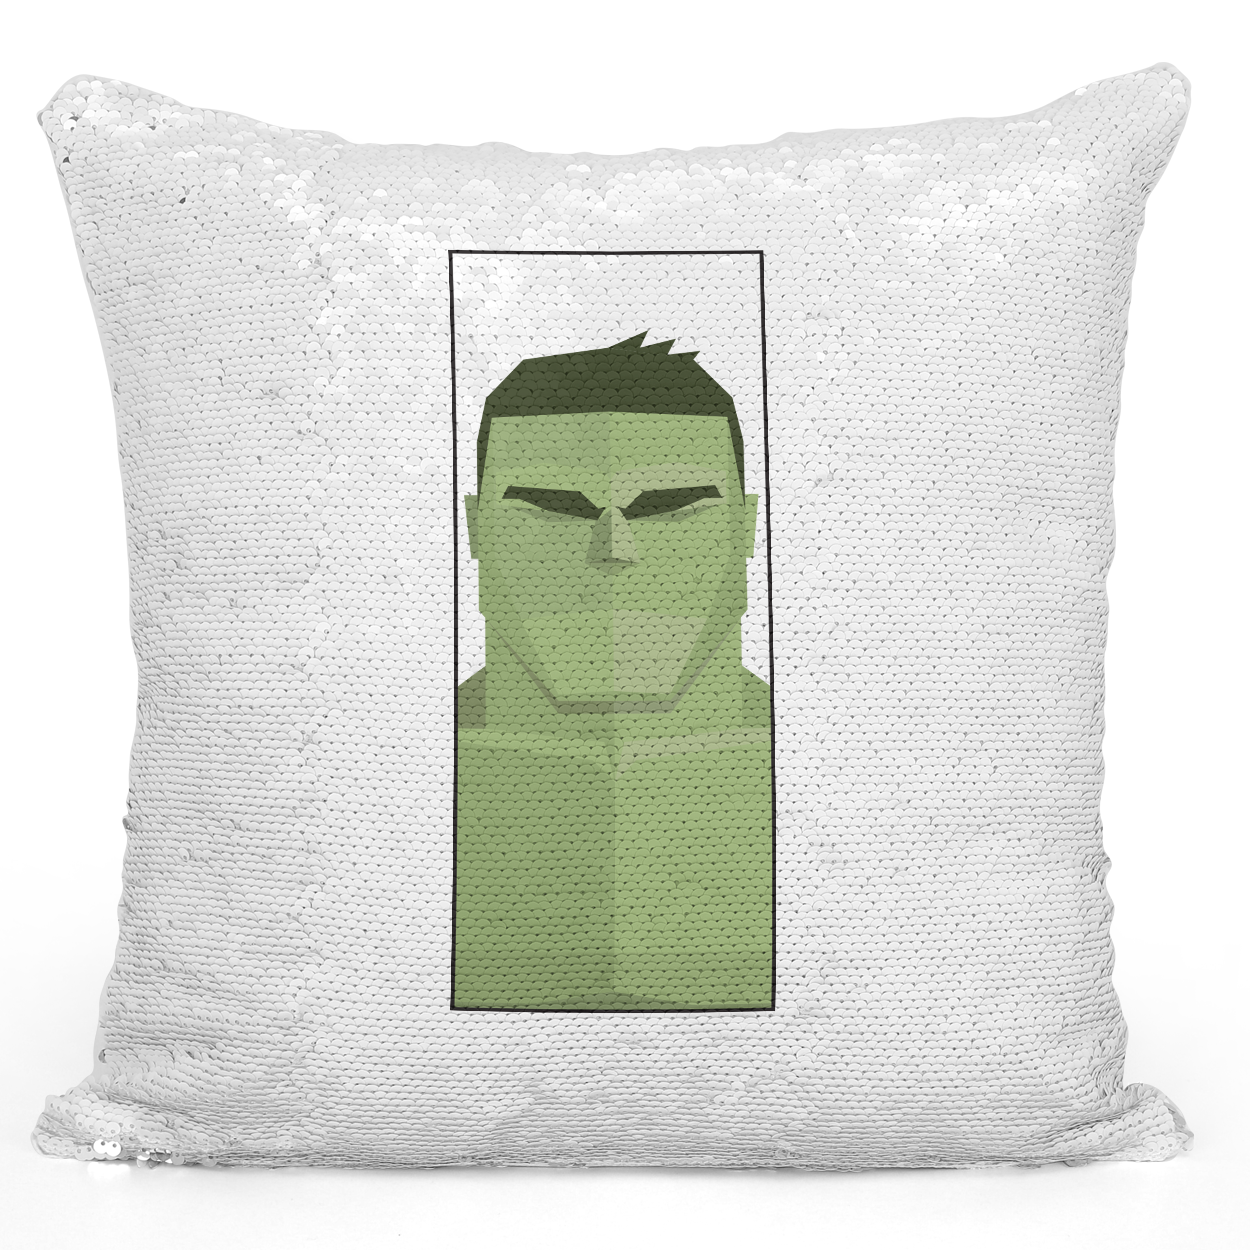 Sequin Pillow Magic Mermaid Throw Pillow Hulk Superhero Character Pillow For Teens And Kids - Durable White 16 x 16 inch Square Modern Livingroom Decorative Pillow Loud Universe